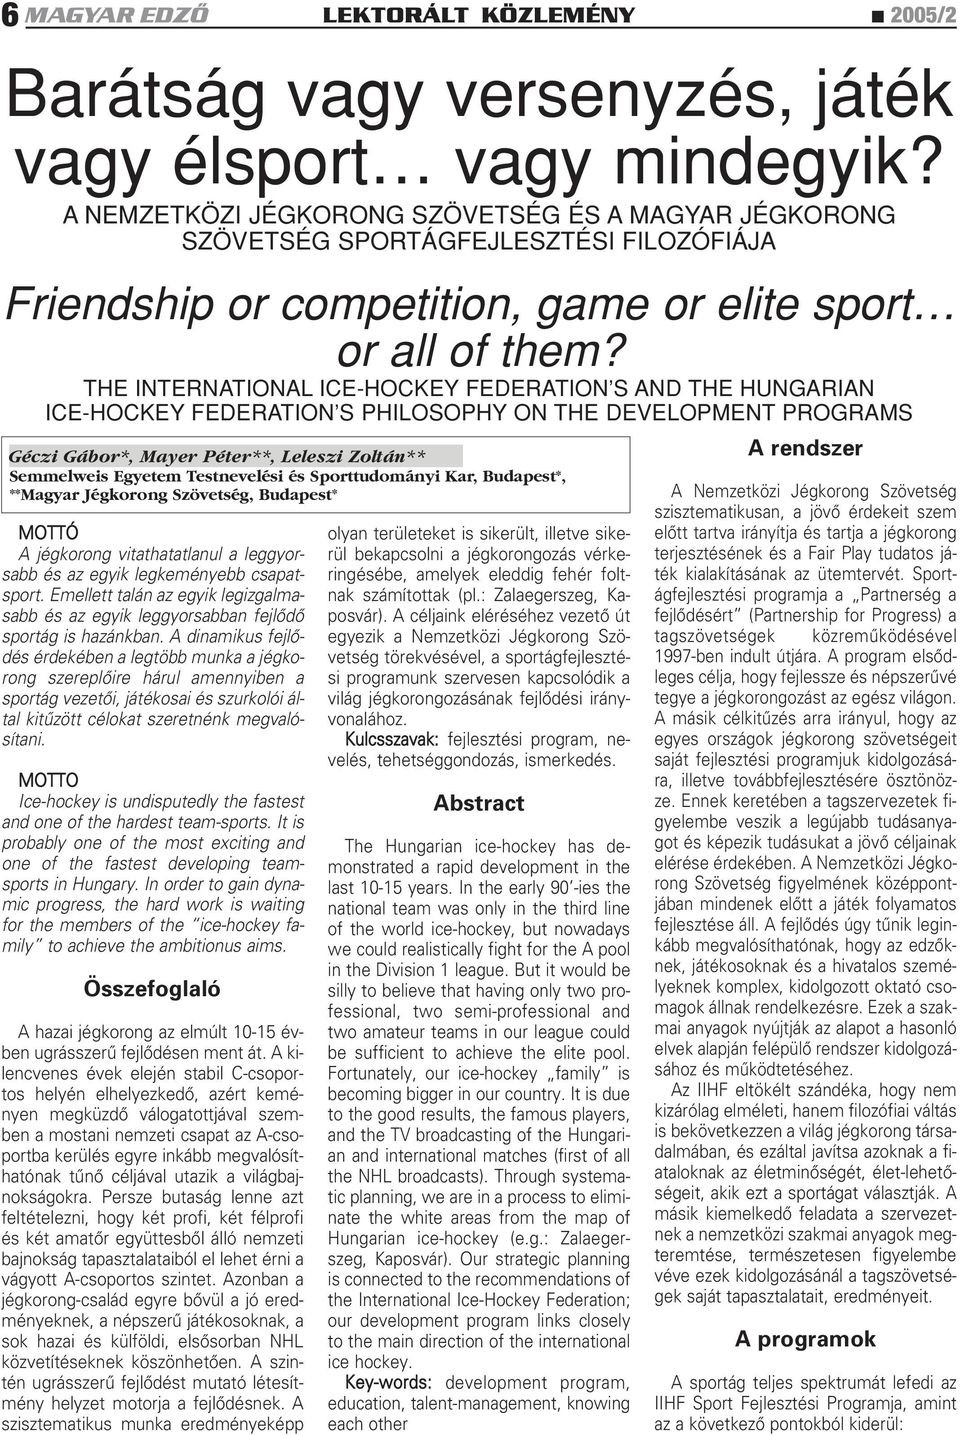 THE INTERNATIONAL ICE-HOCKEY FEDERATION S AND THE HUNGARIAN ICE-HOCKEY FEDERATION S PHILOSOPHY ON THE DEVELOPMENT PROGRAMS Géczi Gábor*, Mayer Péter**, Leleszi Zoltán** Semmelweis Egyetem